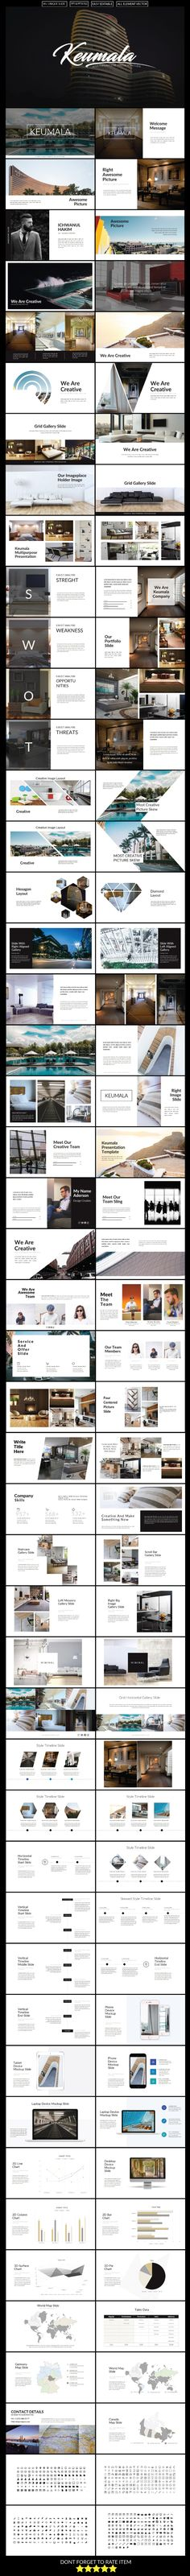 Search for powerpoint   Stunning Resources for designers - OrTheme